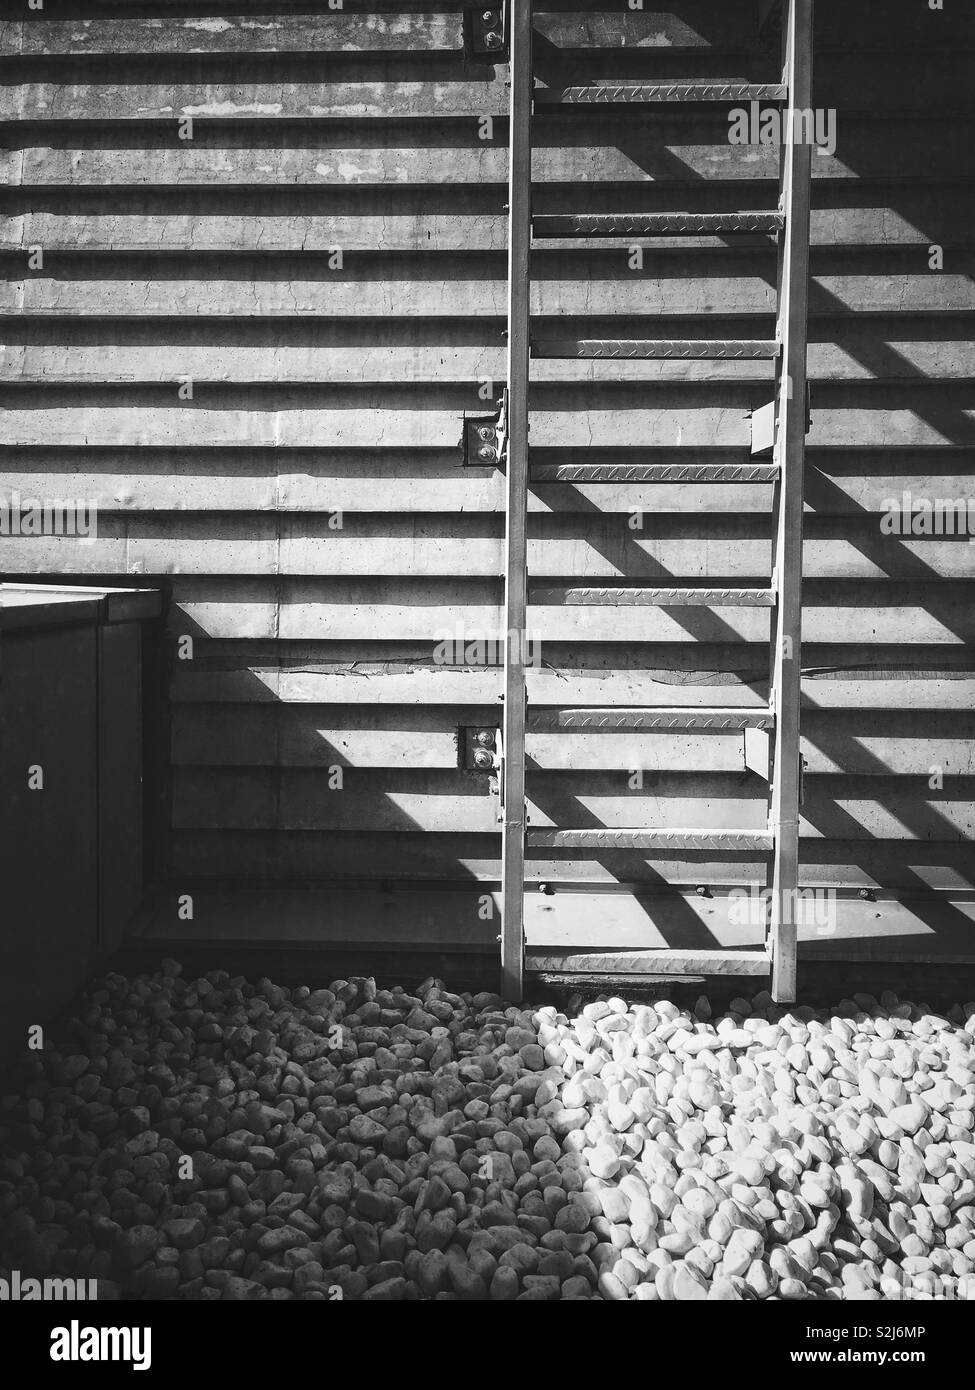 Ladder on a side of a wall. Minimalistic photo. - Stock Image